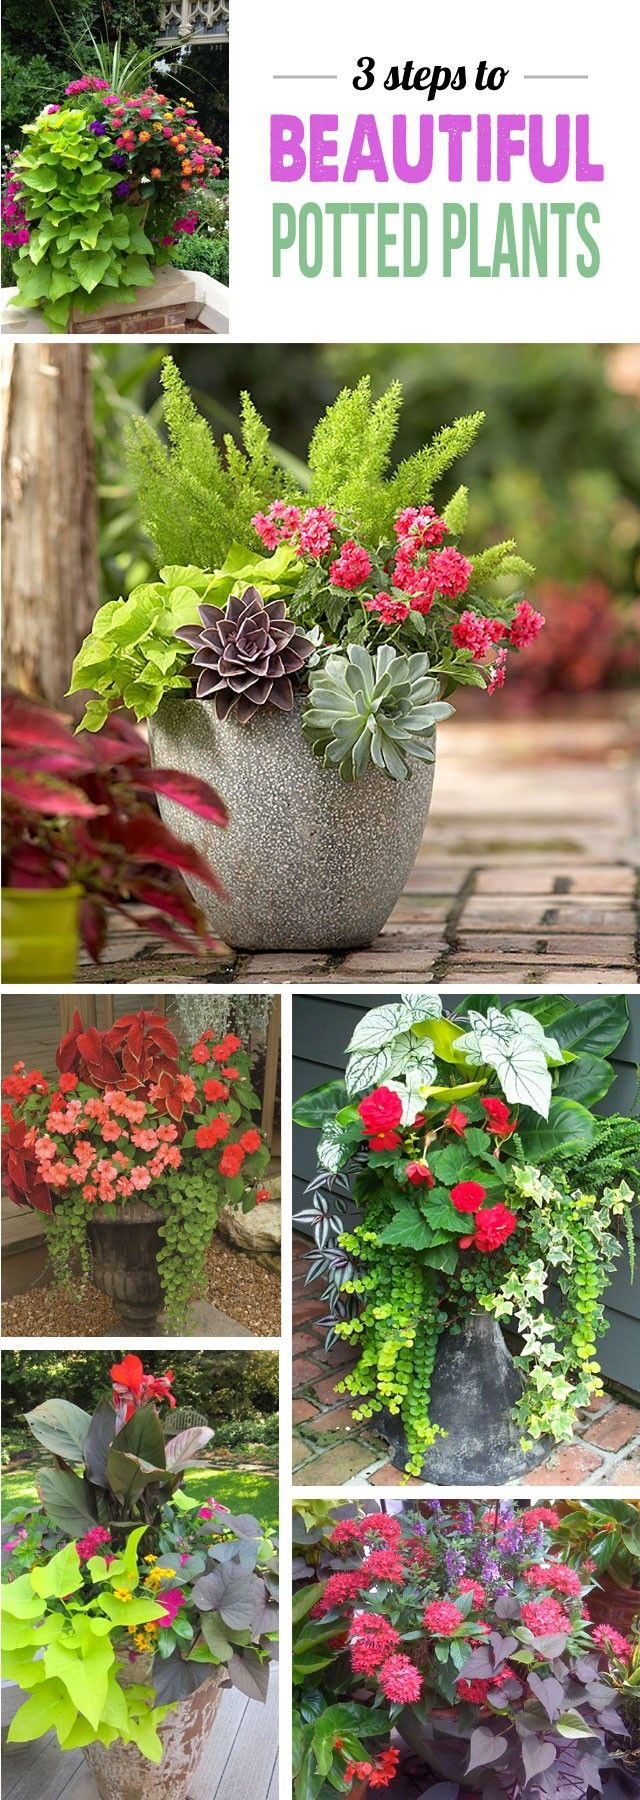 Great tips for making stunning potted plant arrangements!